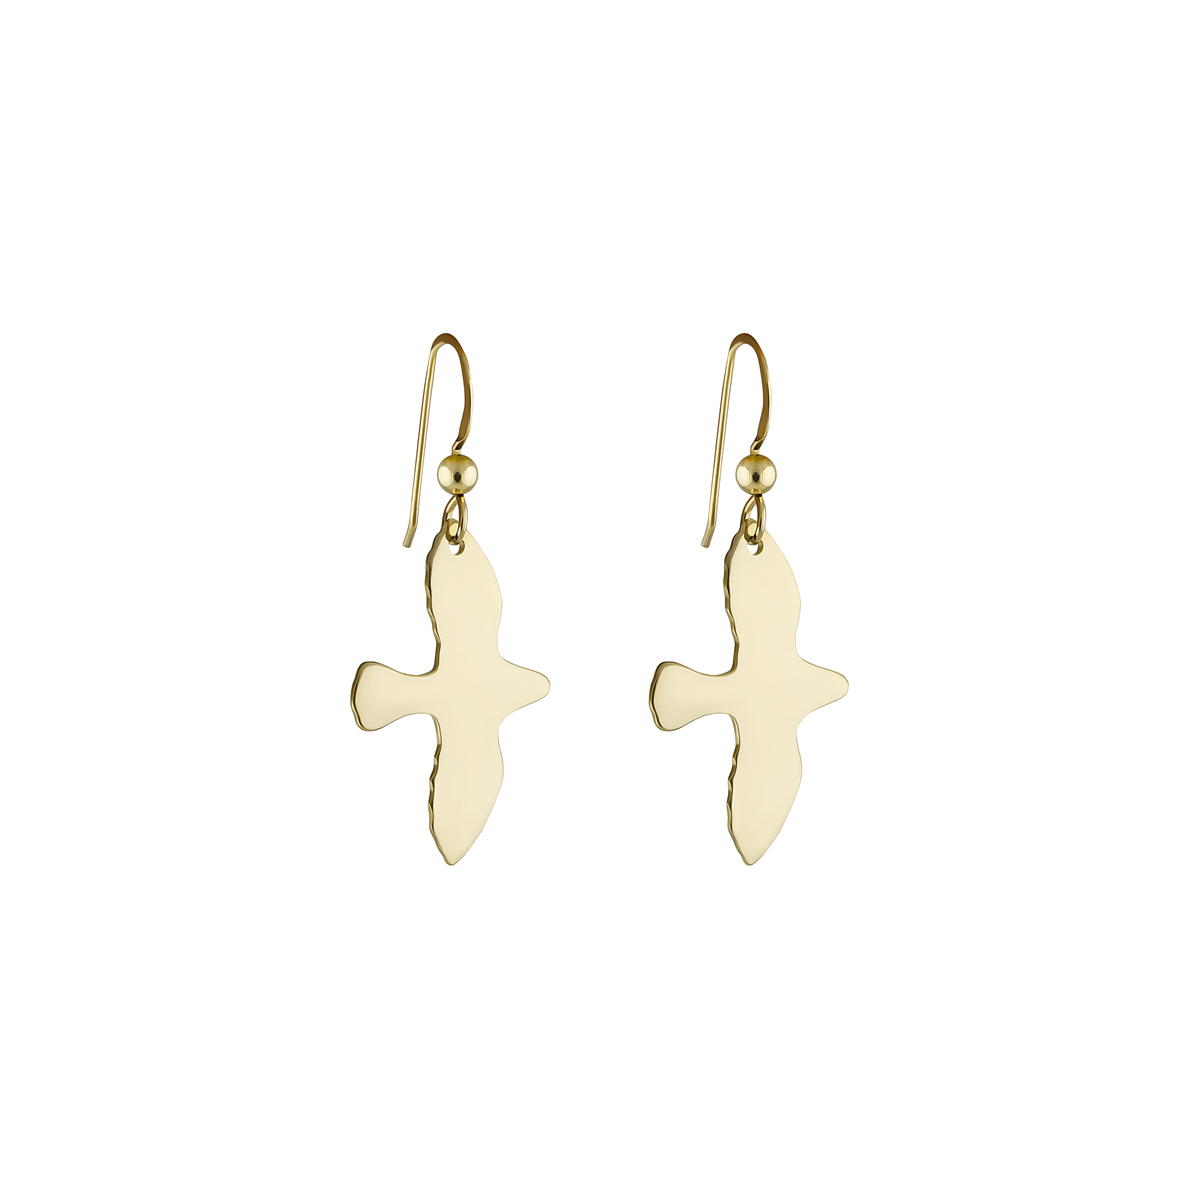 GOLDEN DOVE EARRINGS in the group EARRINGS at EMMA ISRAELSSON (ear022)